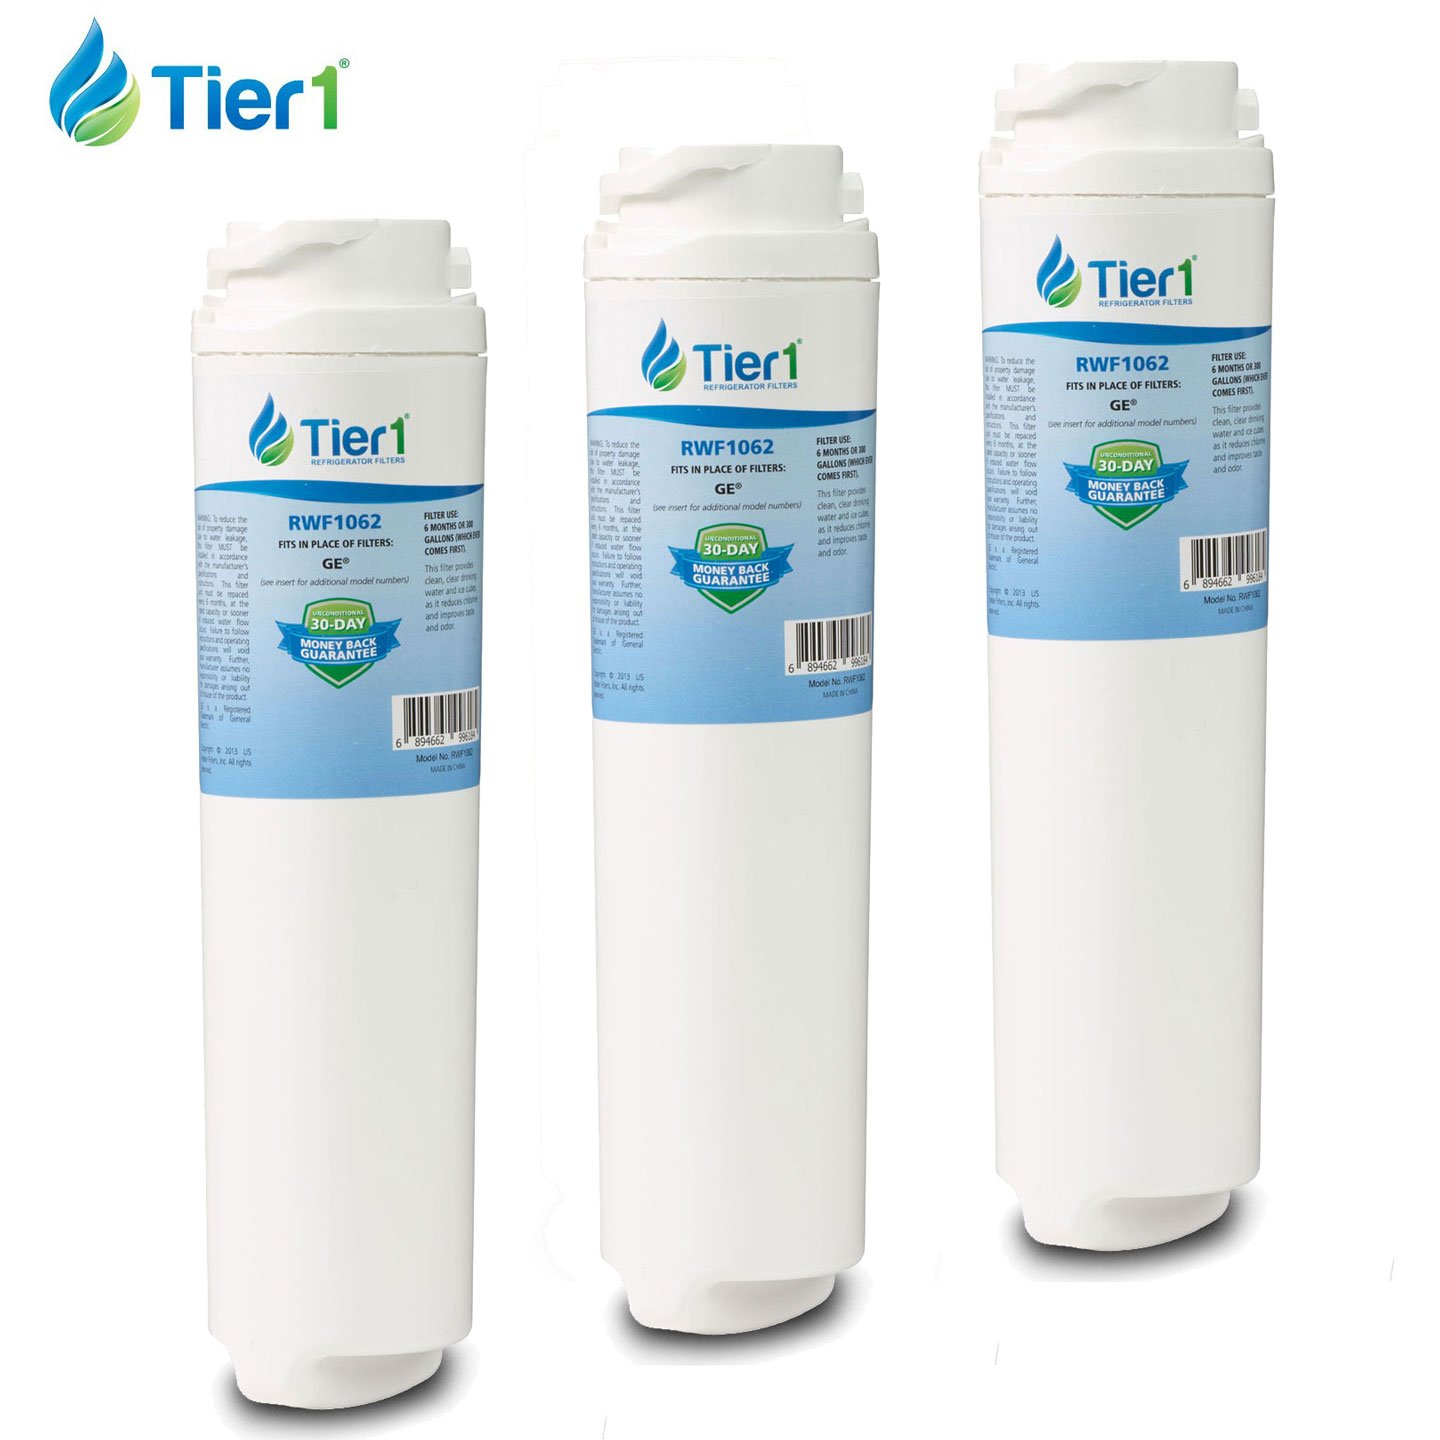 Ge Appliances Water Filter Amazoncom Tier1 Rwf1062 Ge Replacement Refrigerator Water Filter